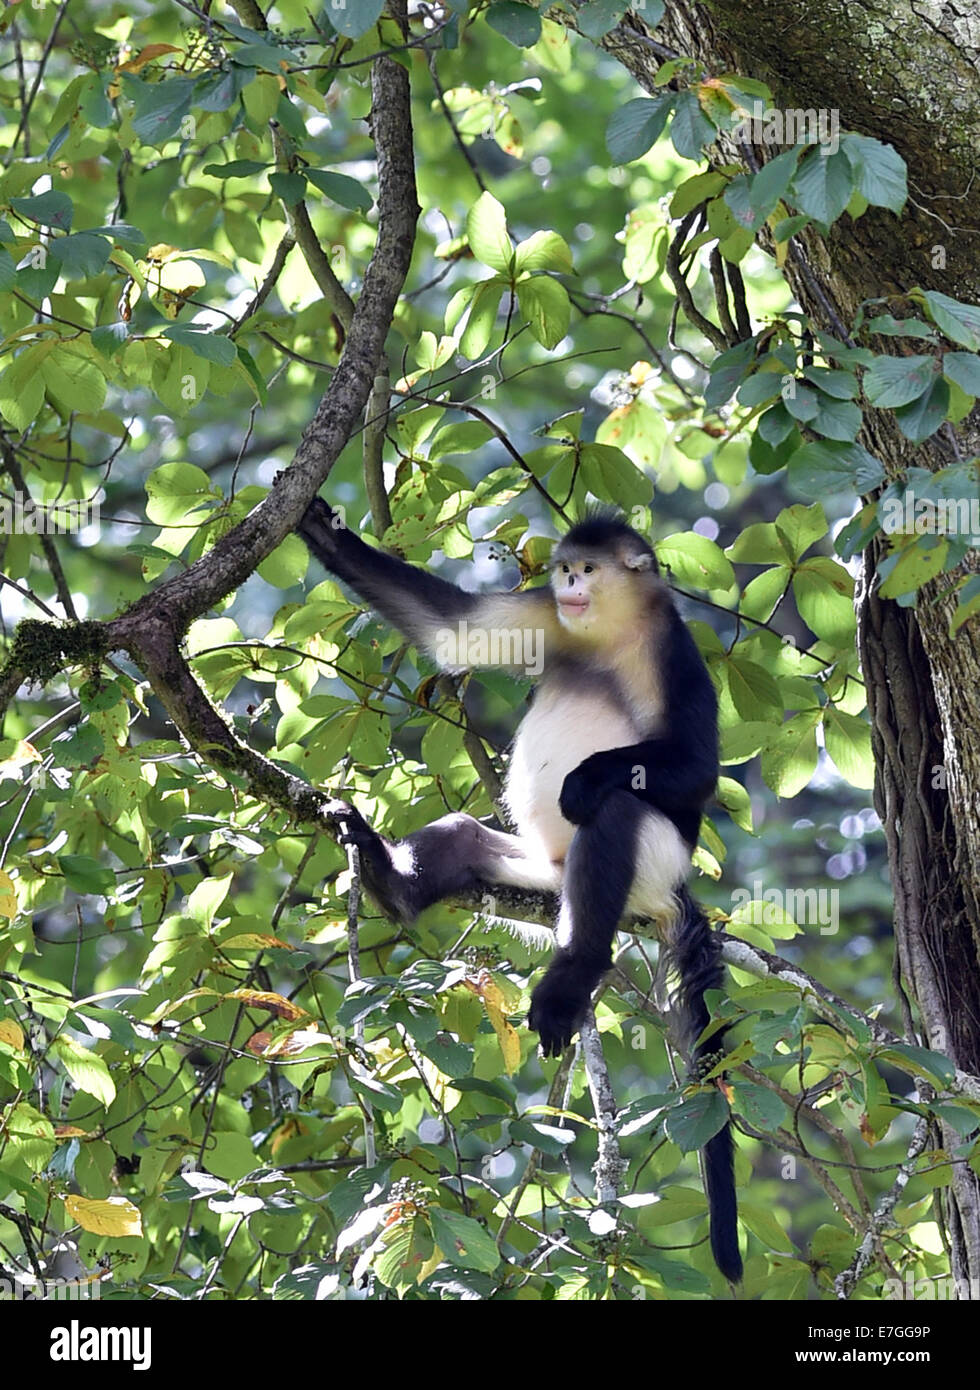 Dequn, Yunnan, China. 17th September, 2014. A black snub-nosed monkey (Rhinopithecus bieti) sits on a tree branch - Stock Image